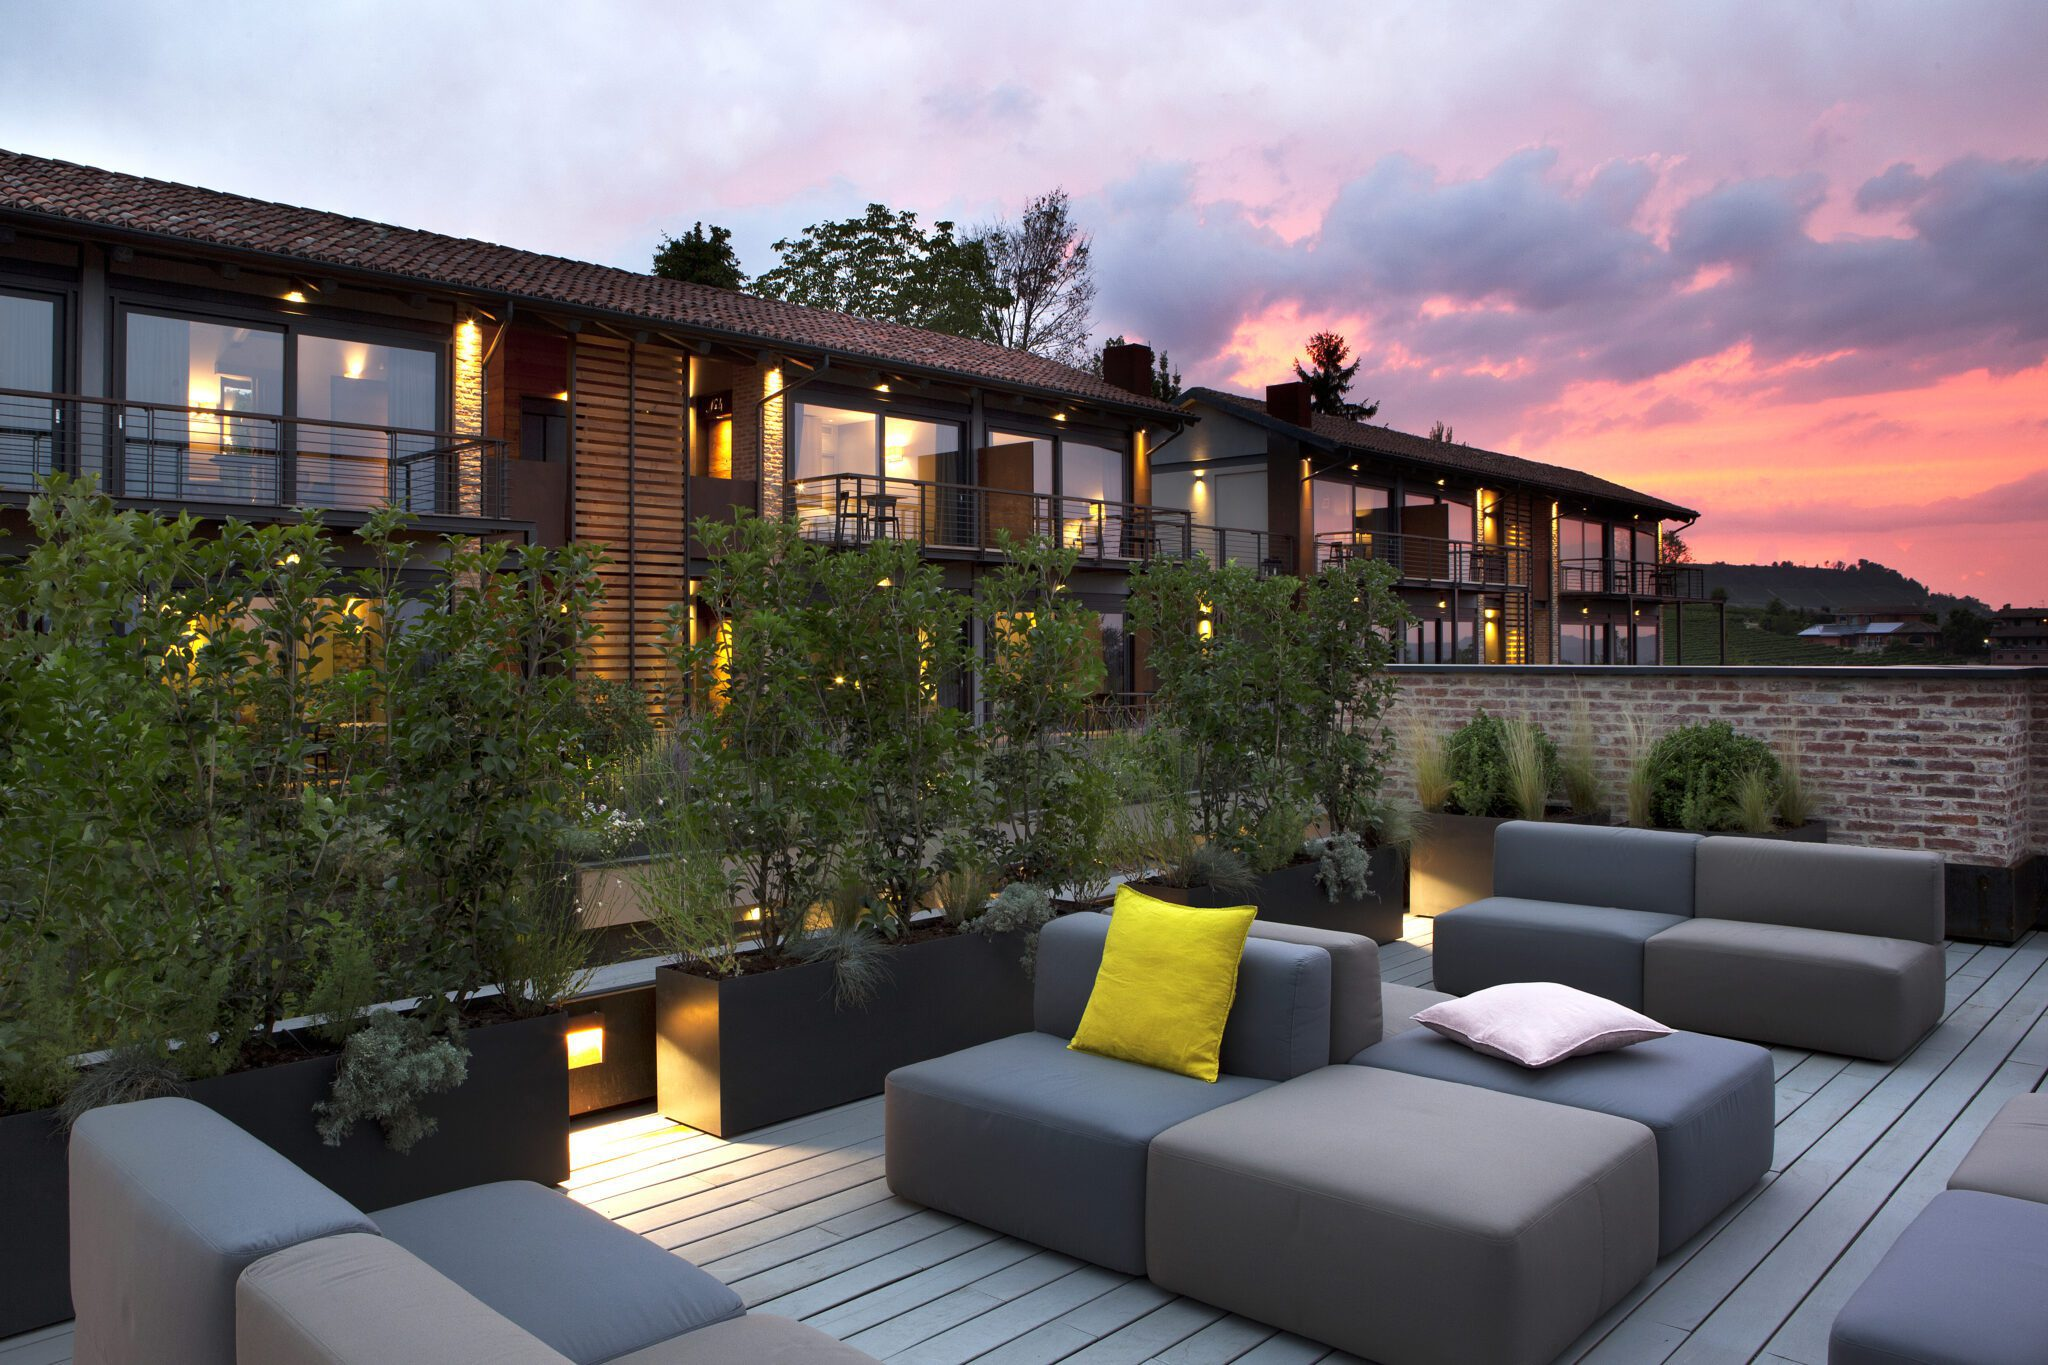 Nest Italy - Boutique Hotel in the Langhe, Piedmont